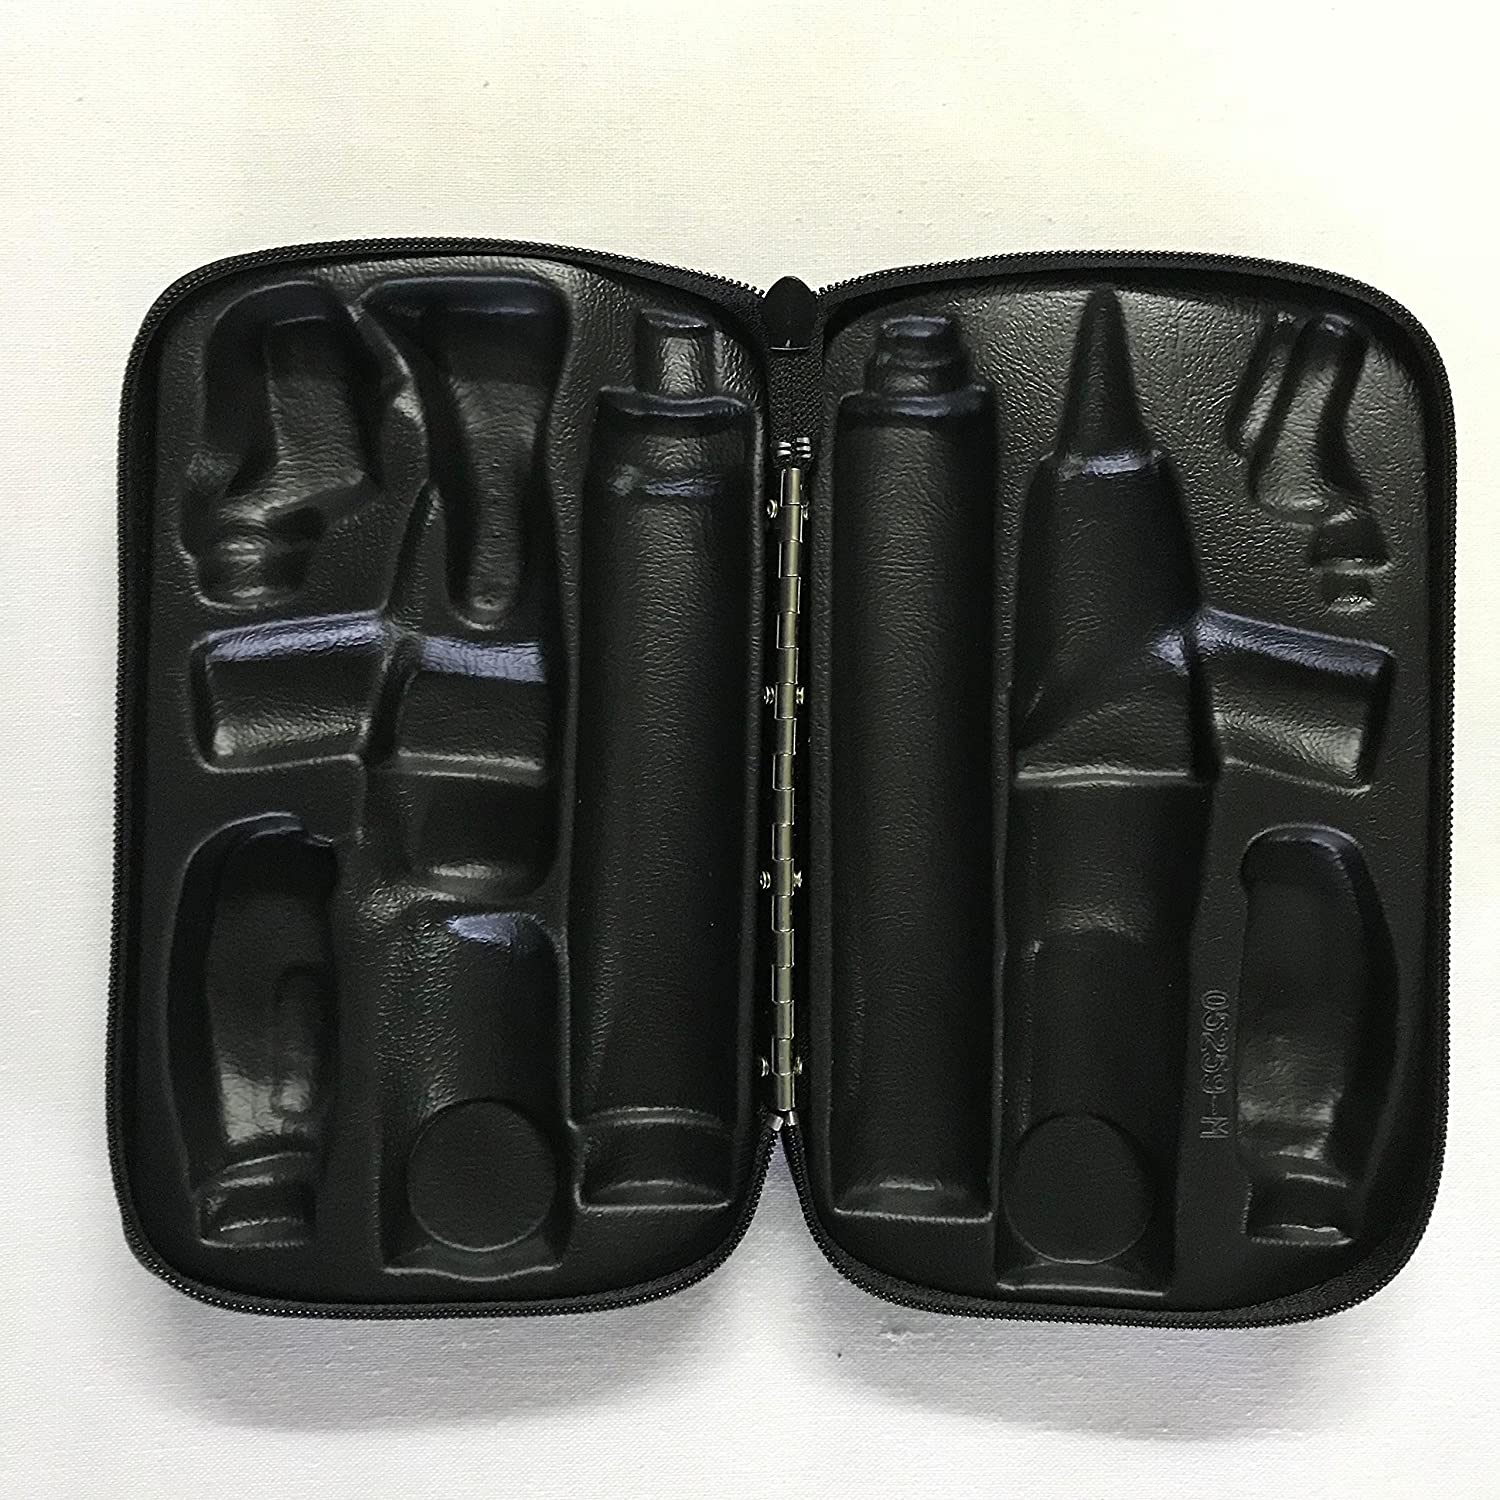 Amazon.com : Welch Allyn 05259-M Hard Case for Diagnostic Otoscope Ophthalmoscope & Handle Set : Office Products